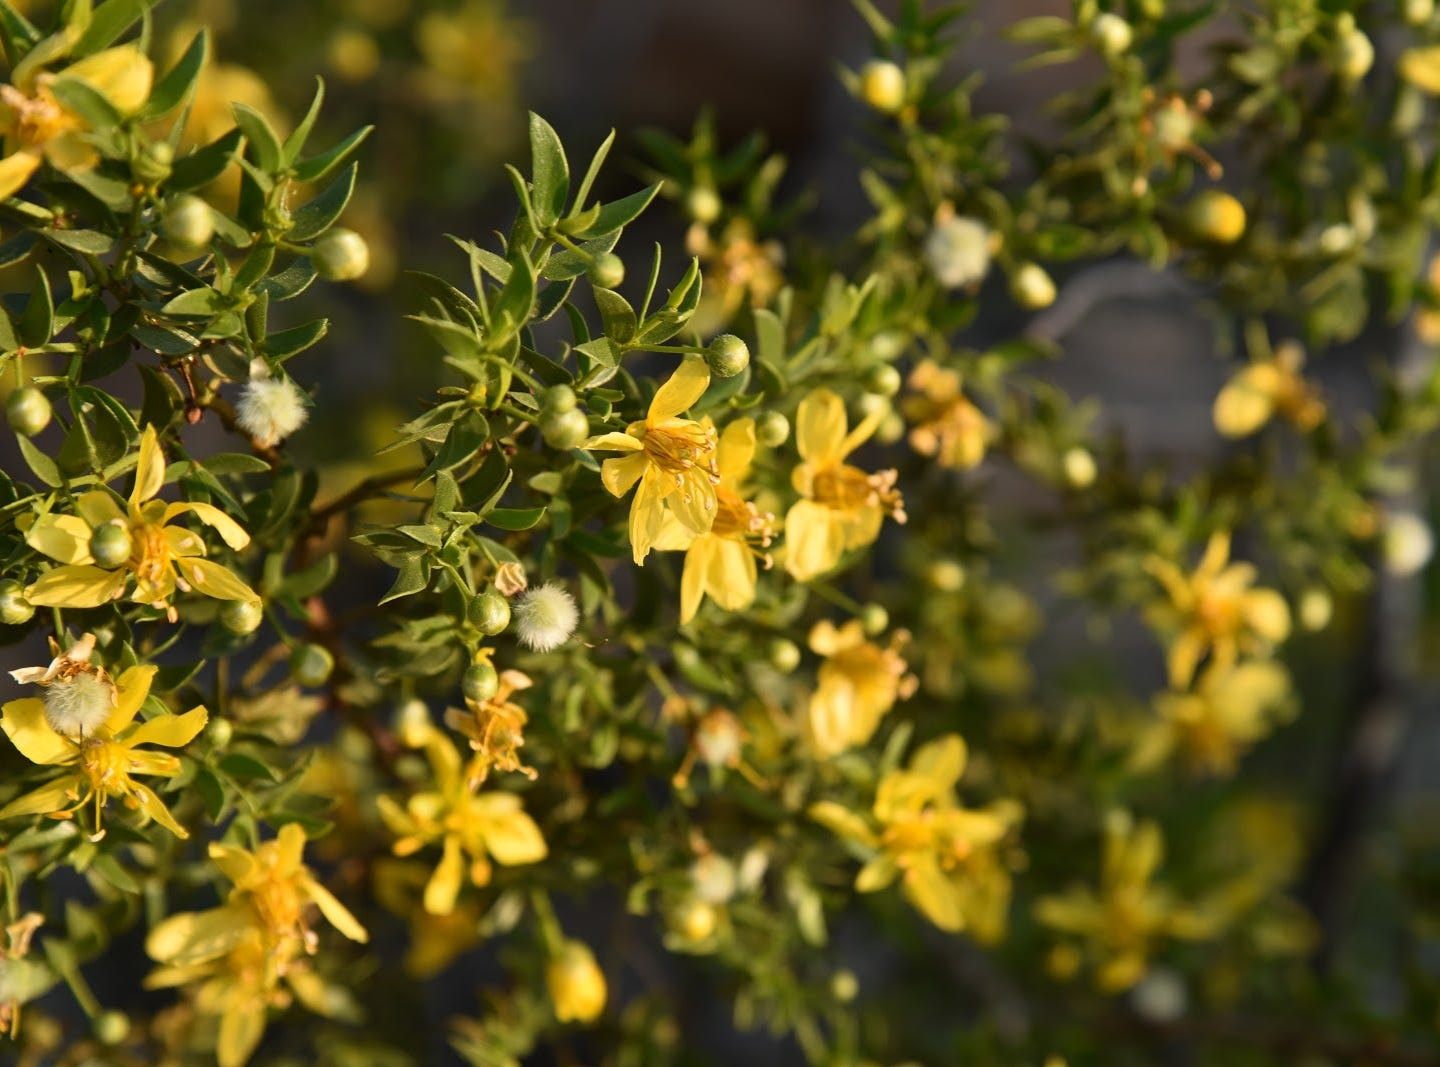 Creosote bloom along the trails in Skyline Regional Park.